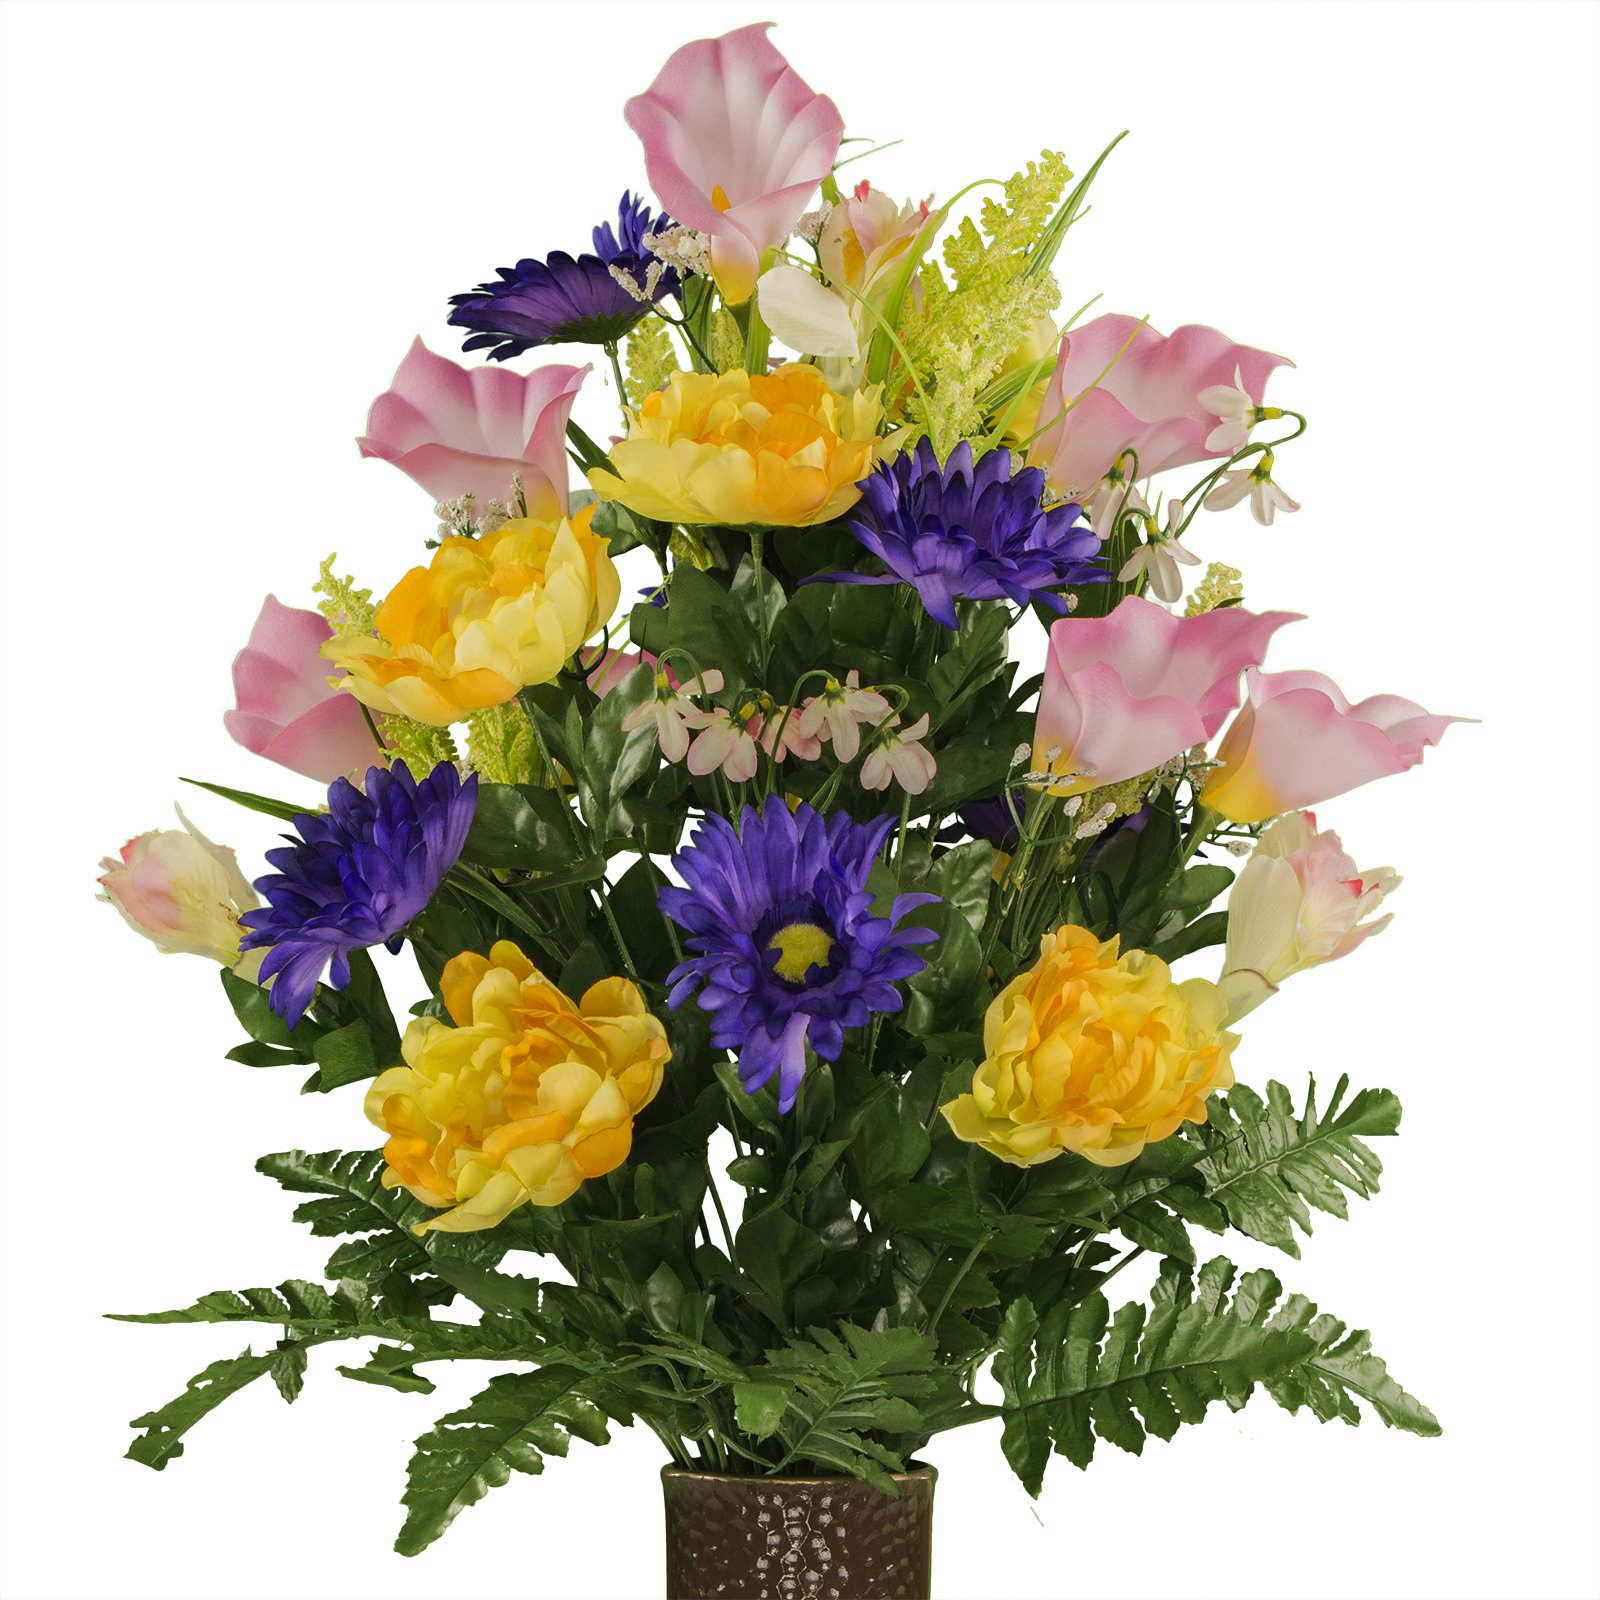 Lavender-Cream-Purple-Mix-featuring-the-Stay-In-The-Vase-DesignC-Flower-Holder-LG1948